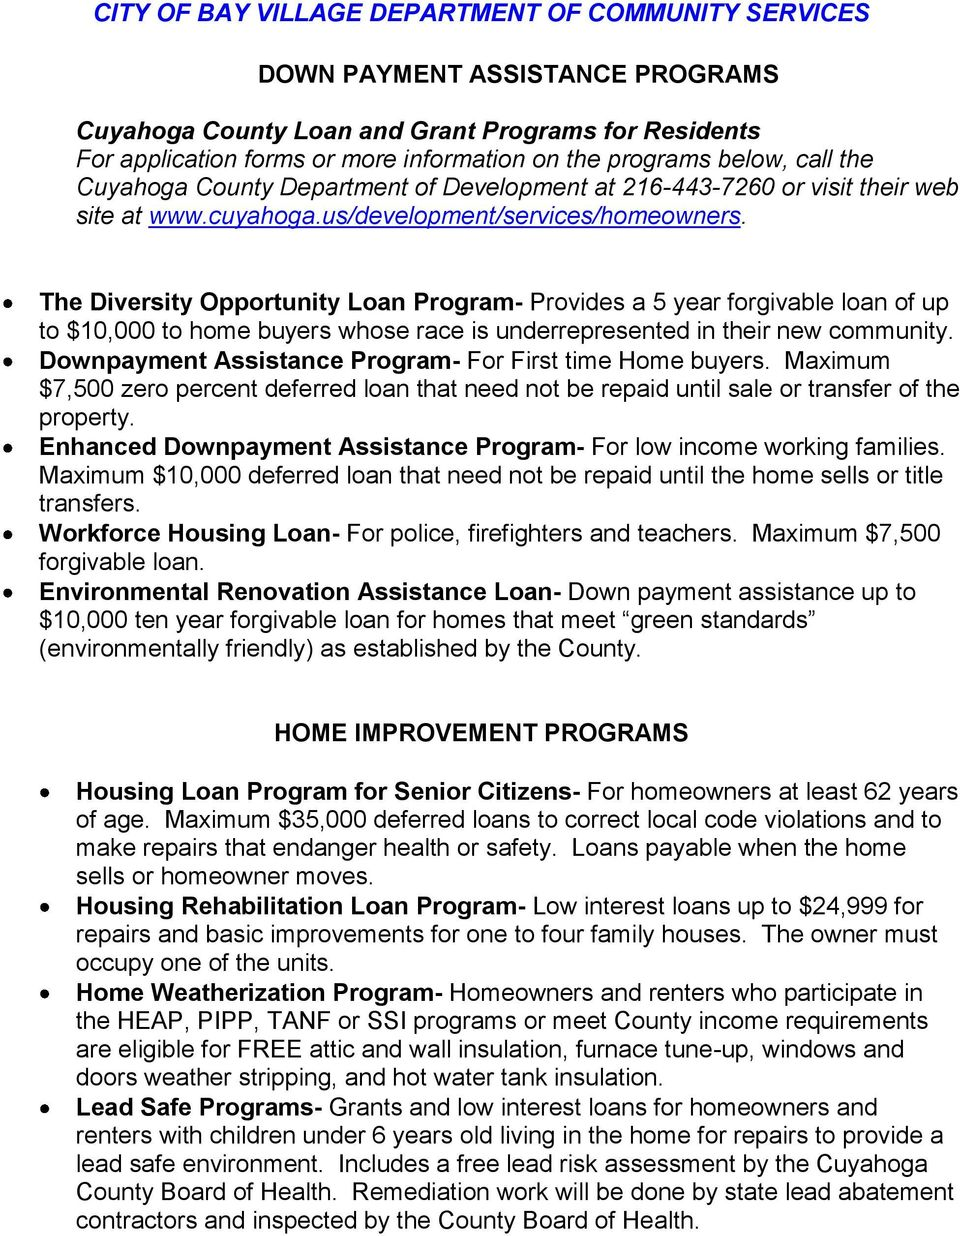 The Diversity Opportunity Loan Program- Provides a 5 year forgivable loan of up to $10,000 to home buyers whose race is underrepresented in their new community.